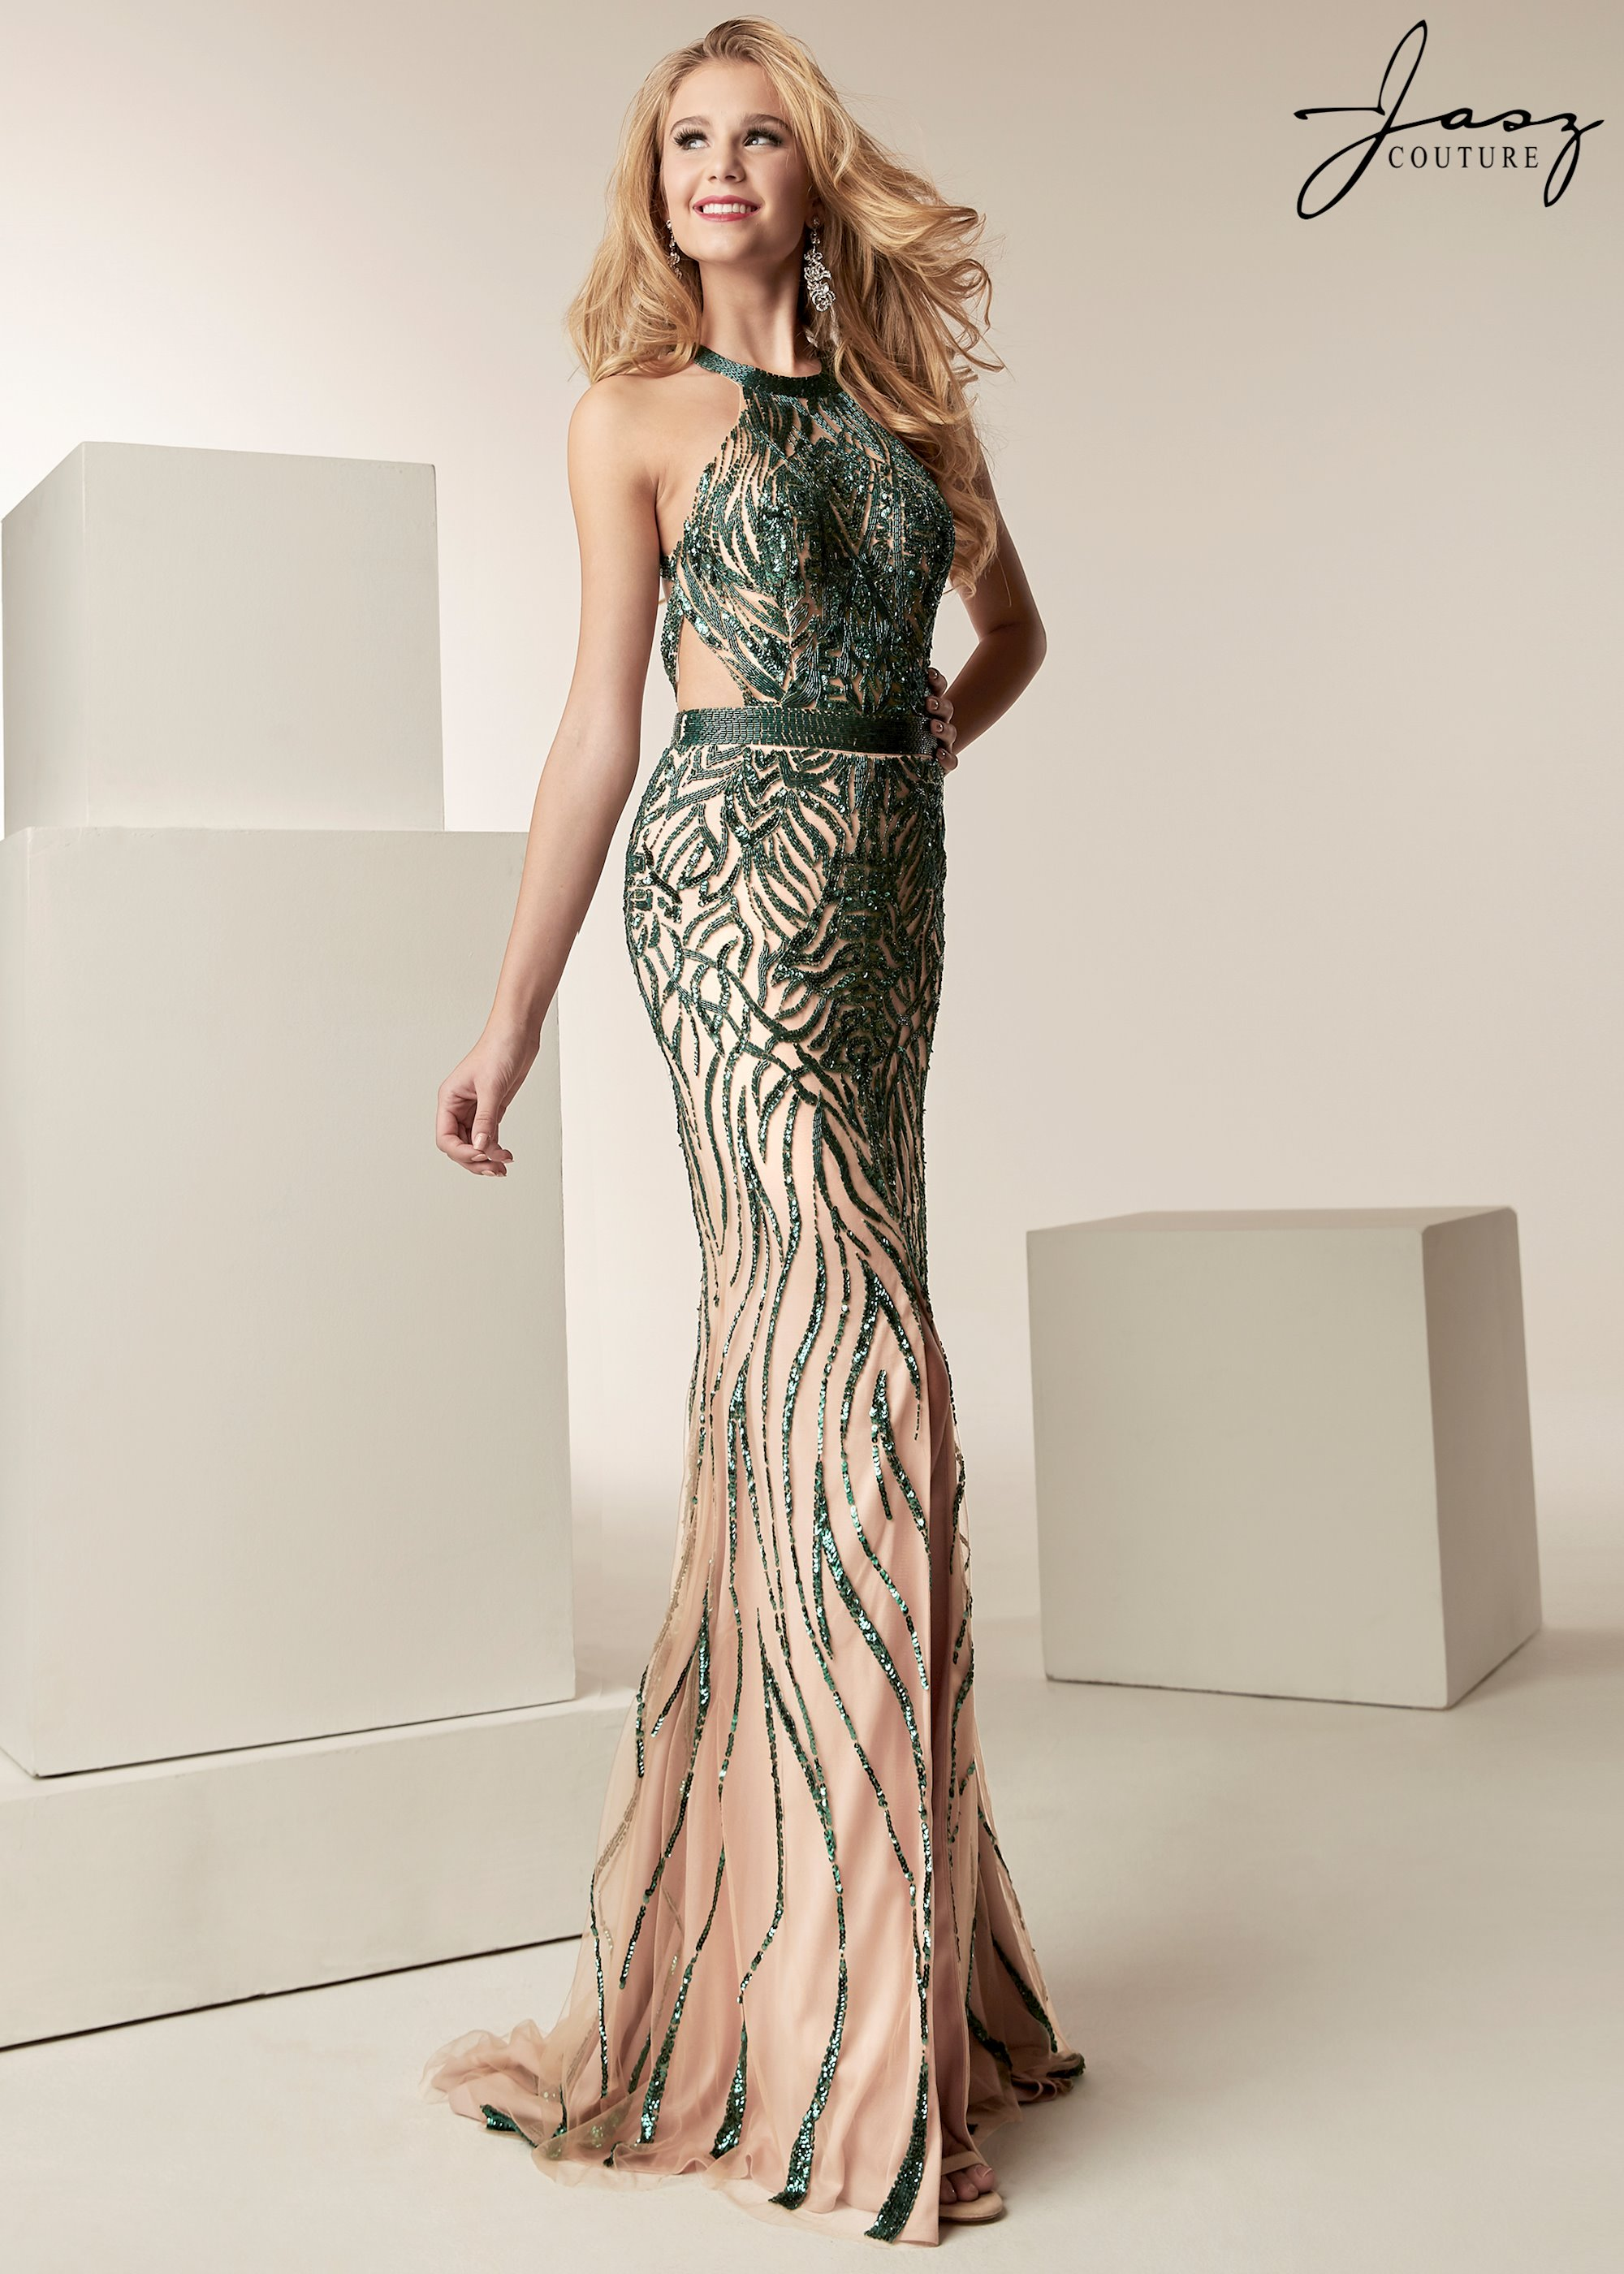 Jasz Couture | Luxury Prom, Homecoming and Pageant Gowns and Dresses